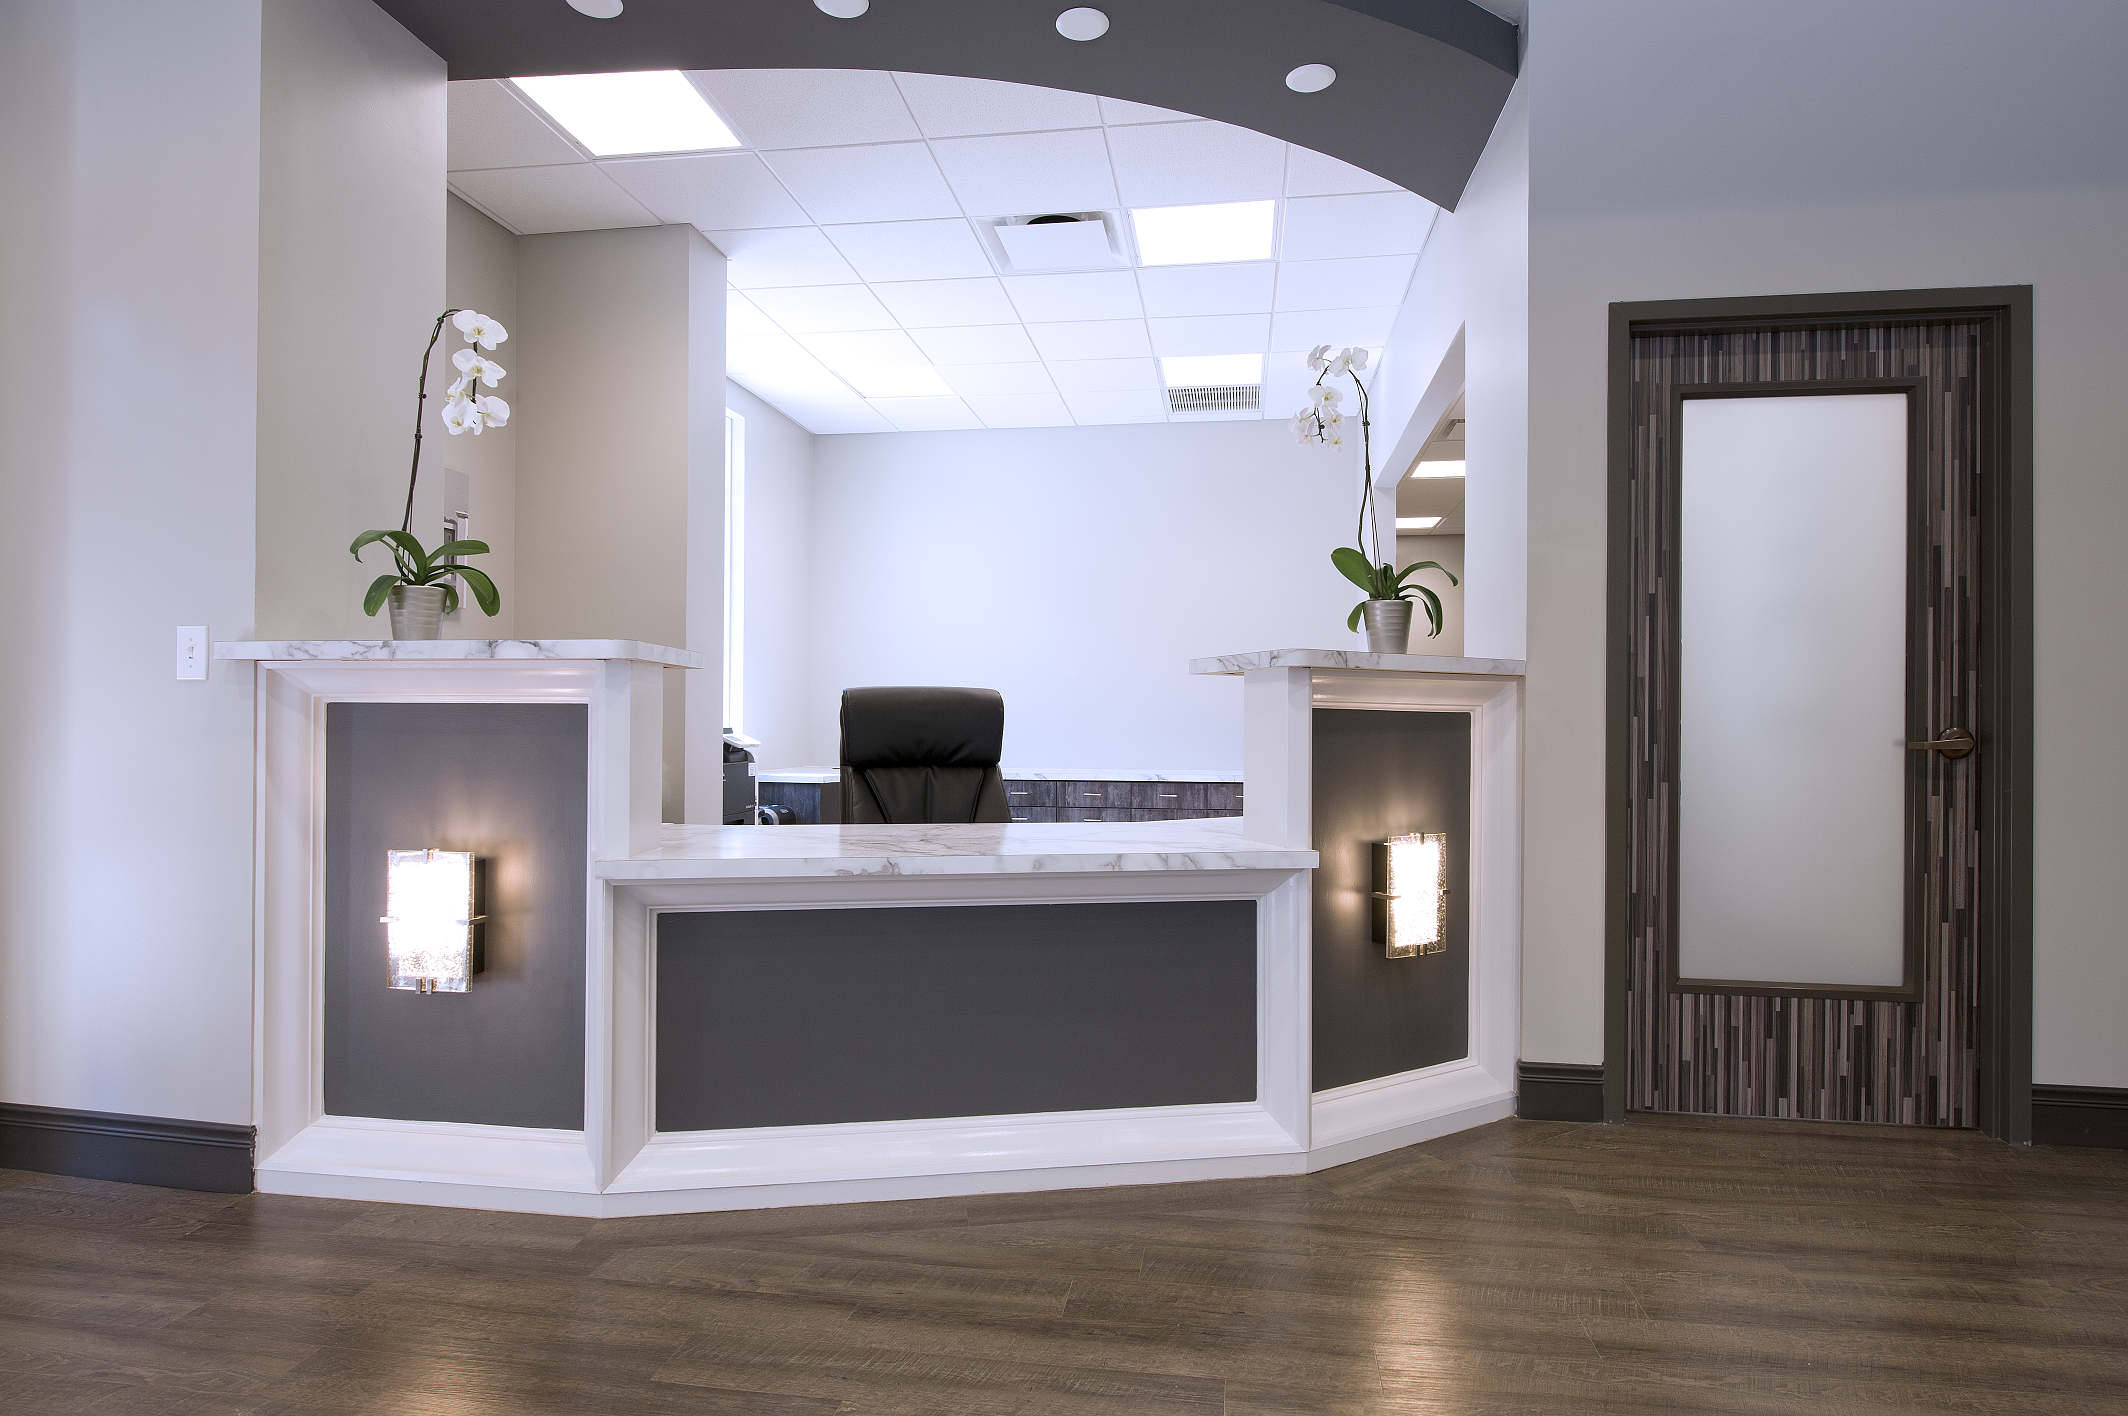 dental office glass doors - Google Search | Medical office ...